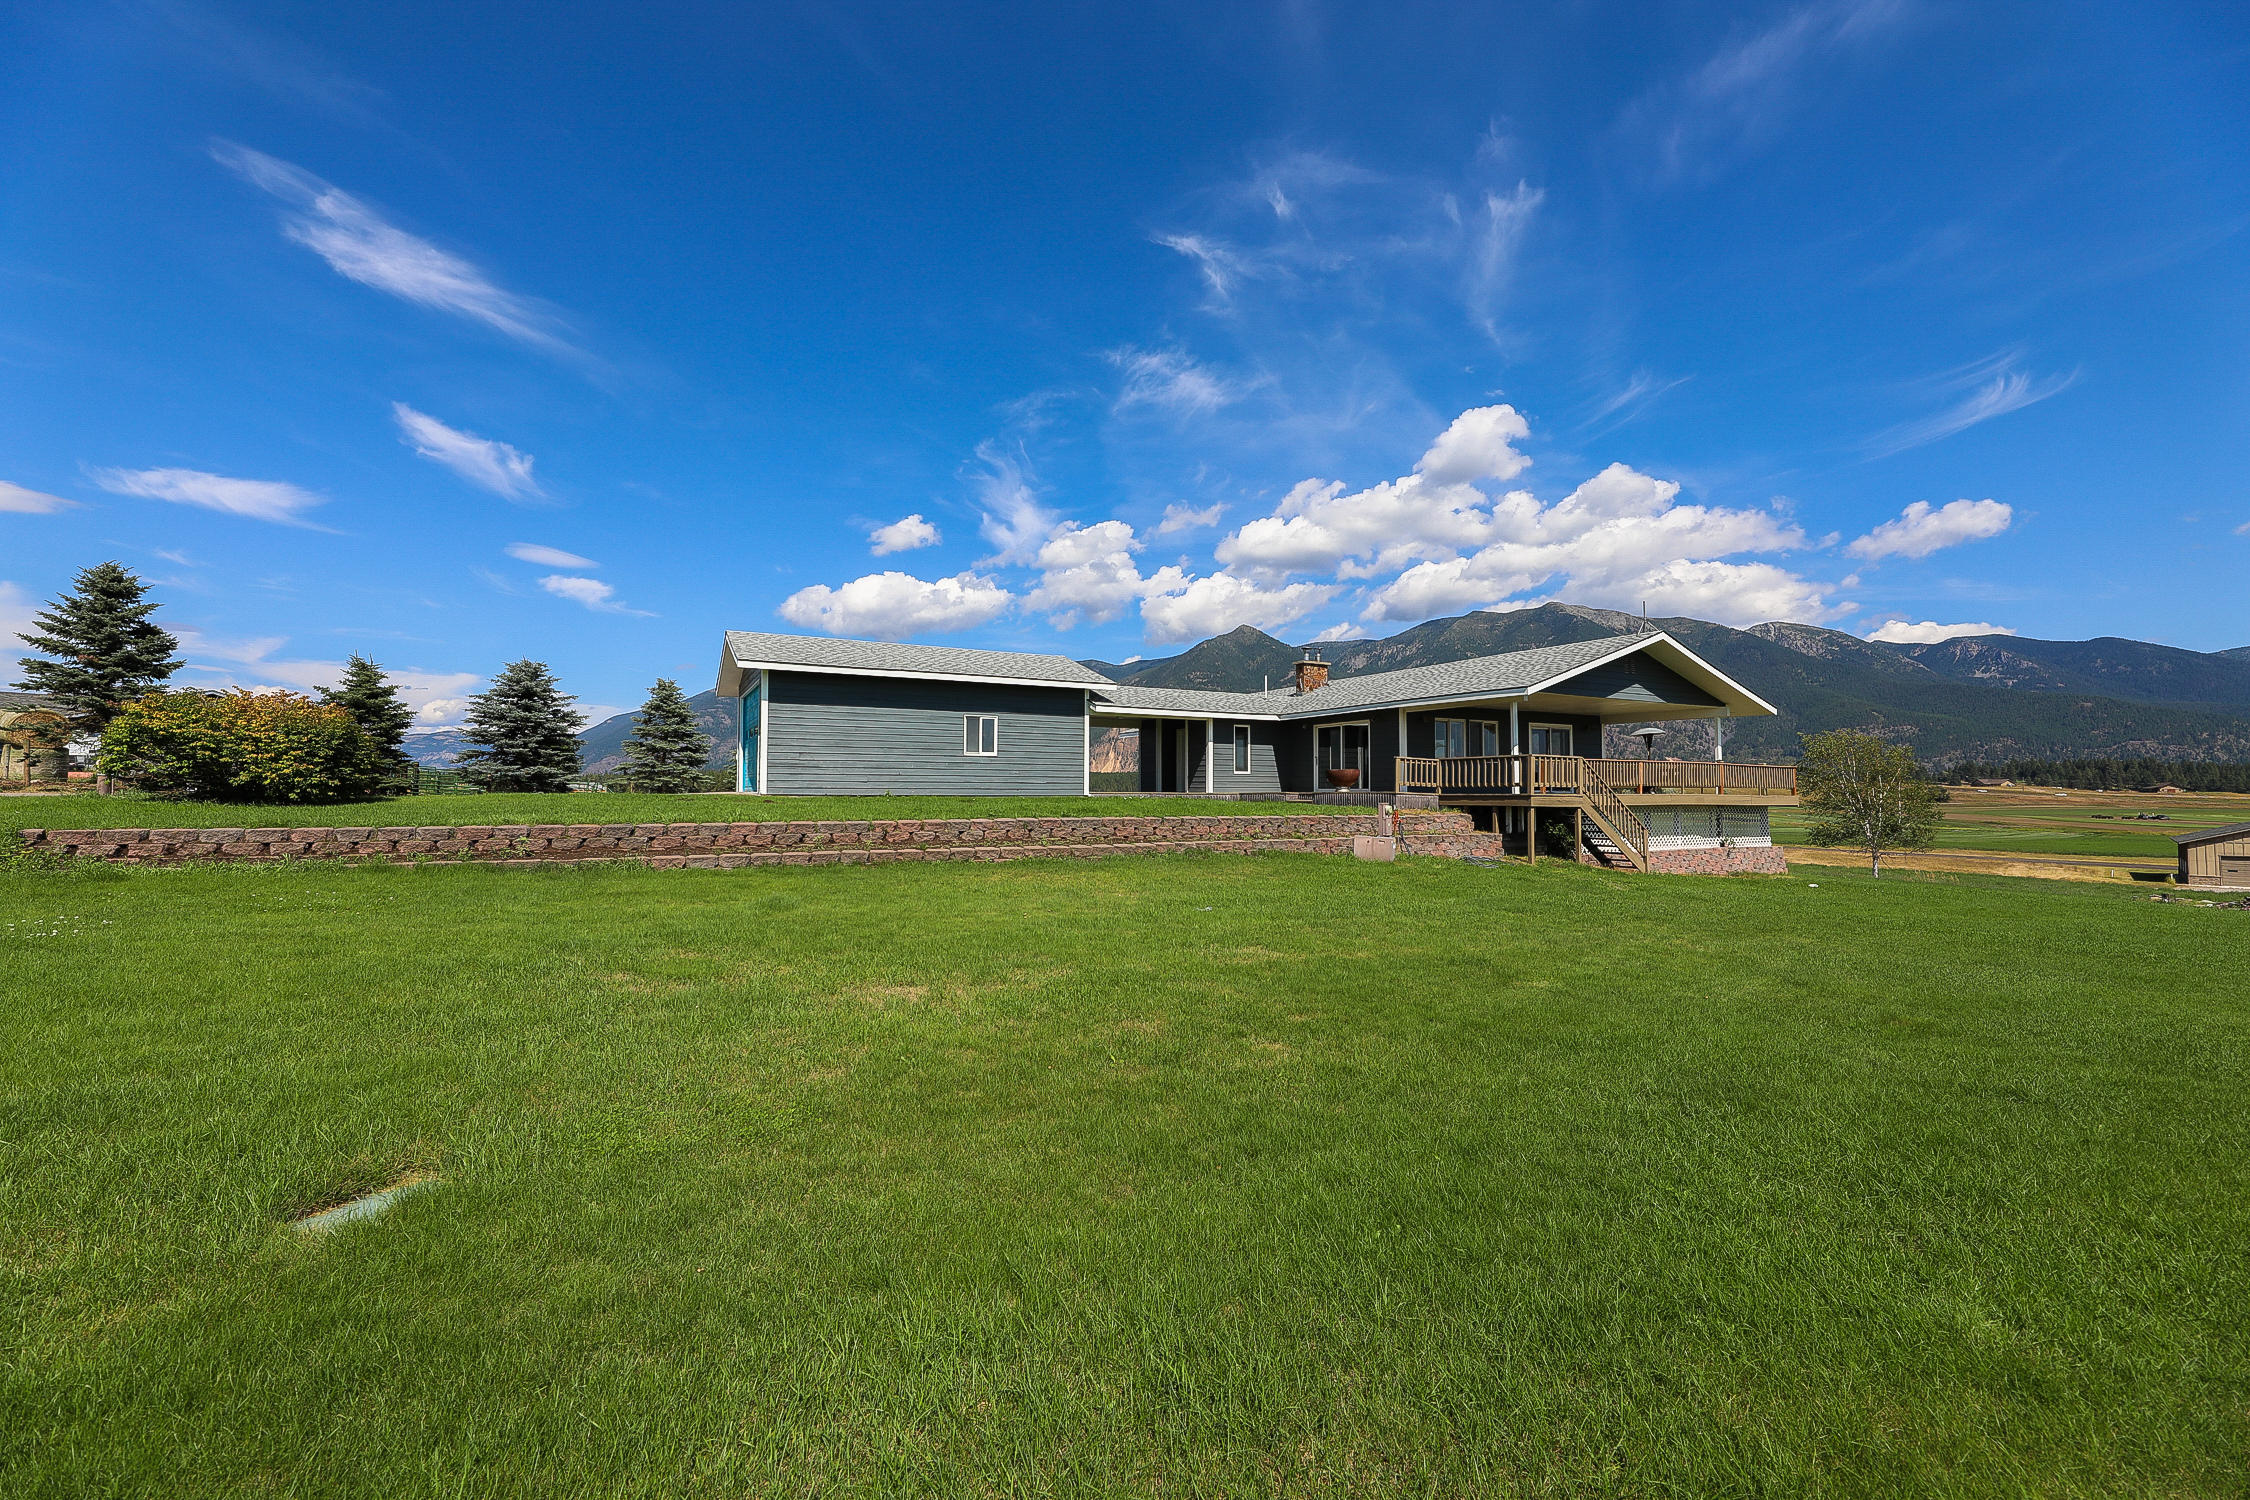 Home for Sale at 1375 Middle Road in Columbia Falls, Montana